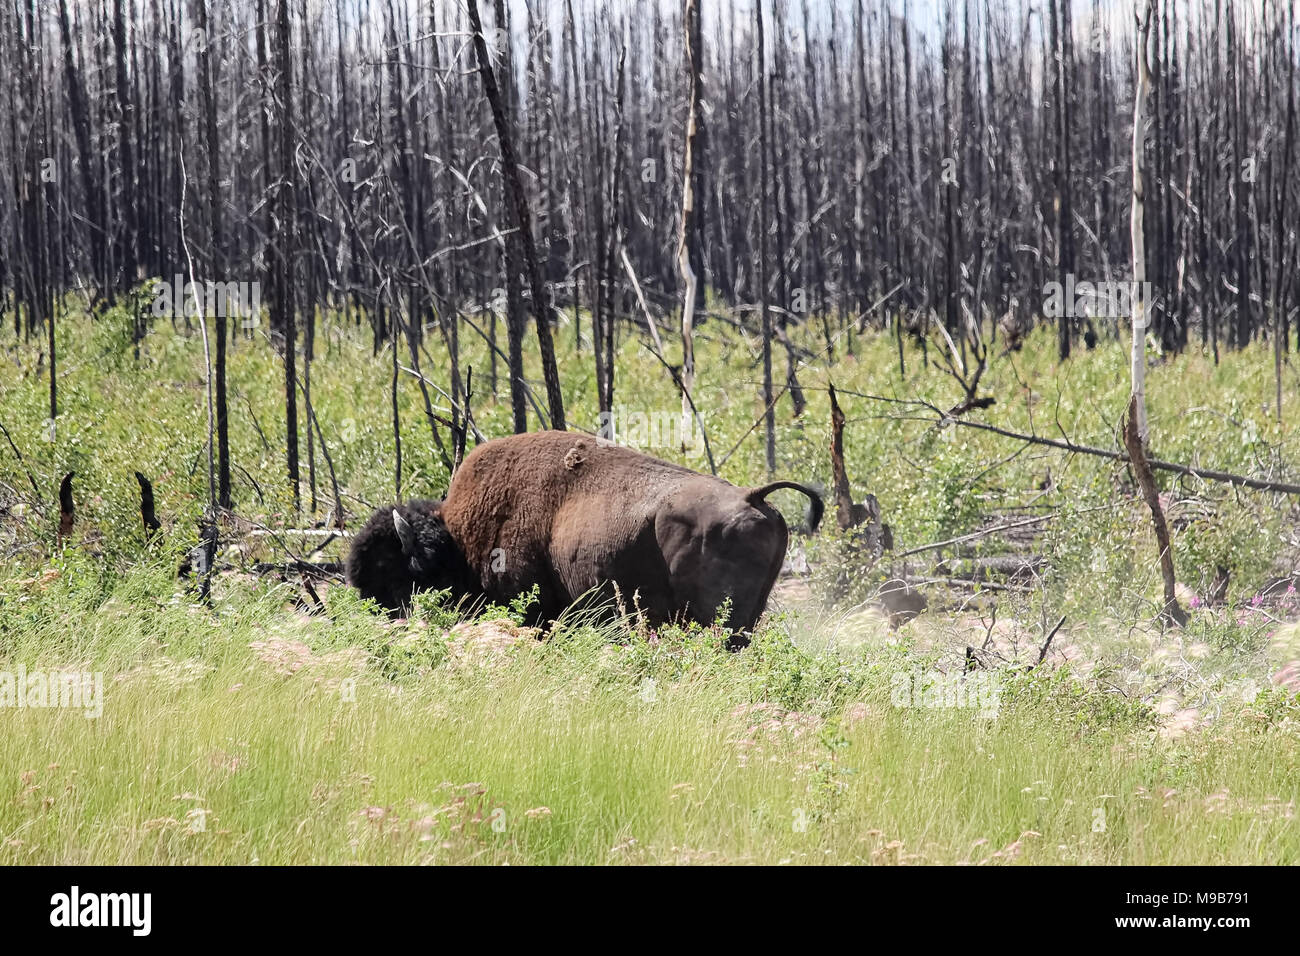 An angry buffalo raises it's tail in a warning - Stock Image